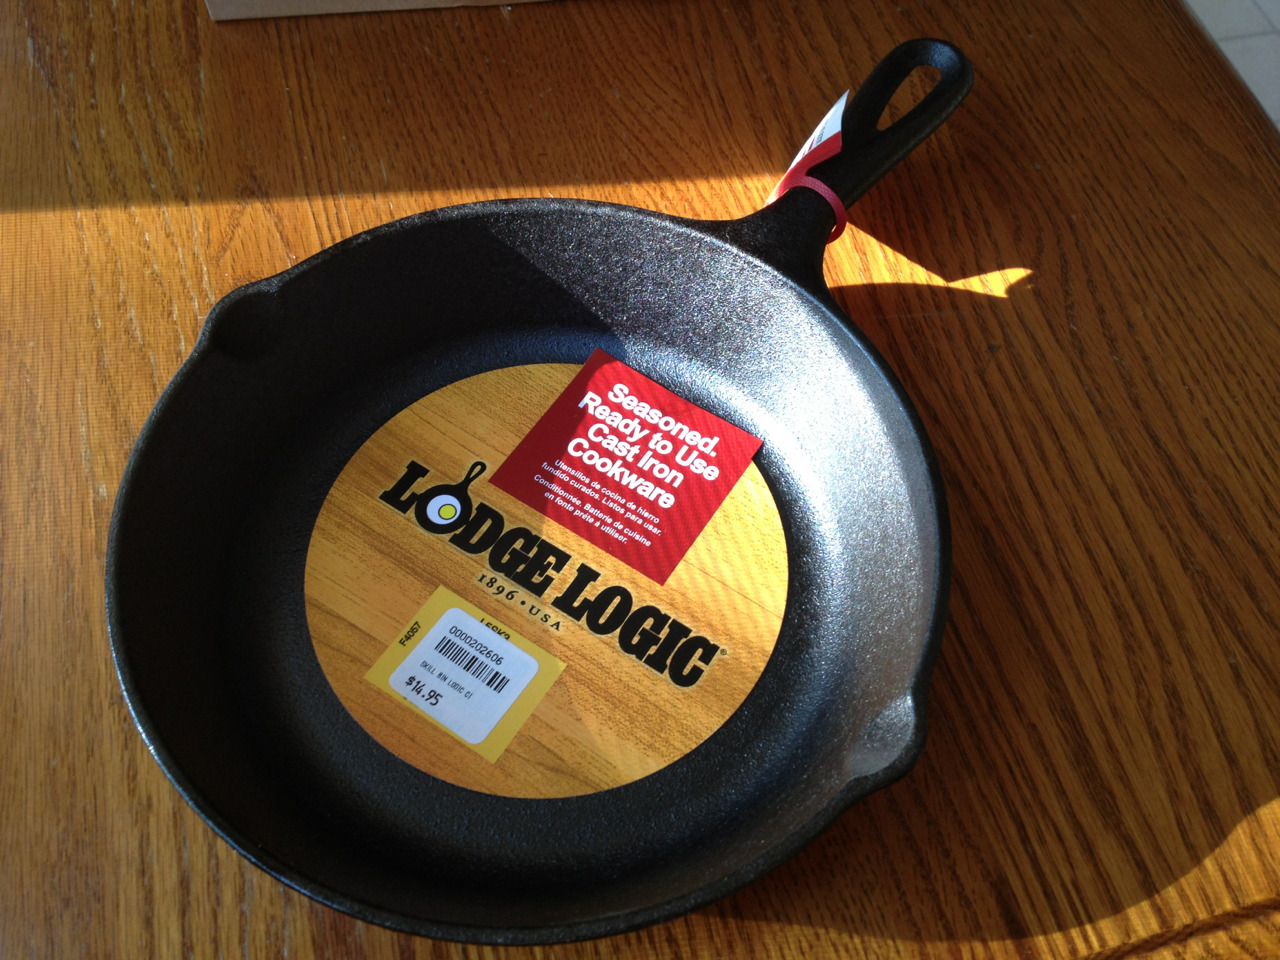 More cast iron for the collection. Best pans ever.